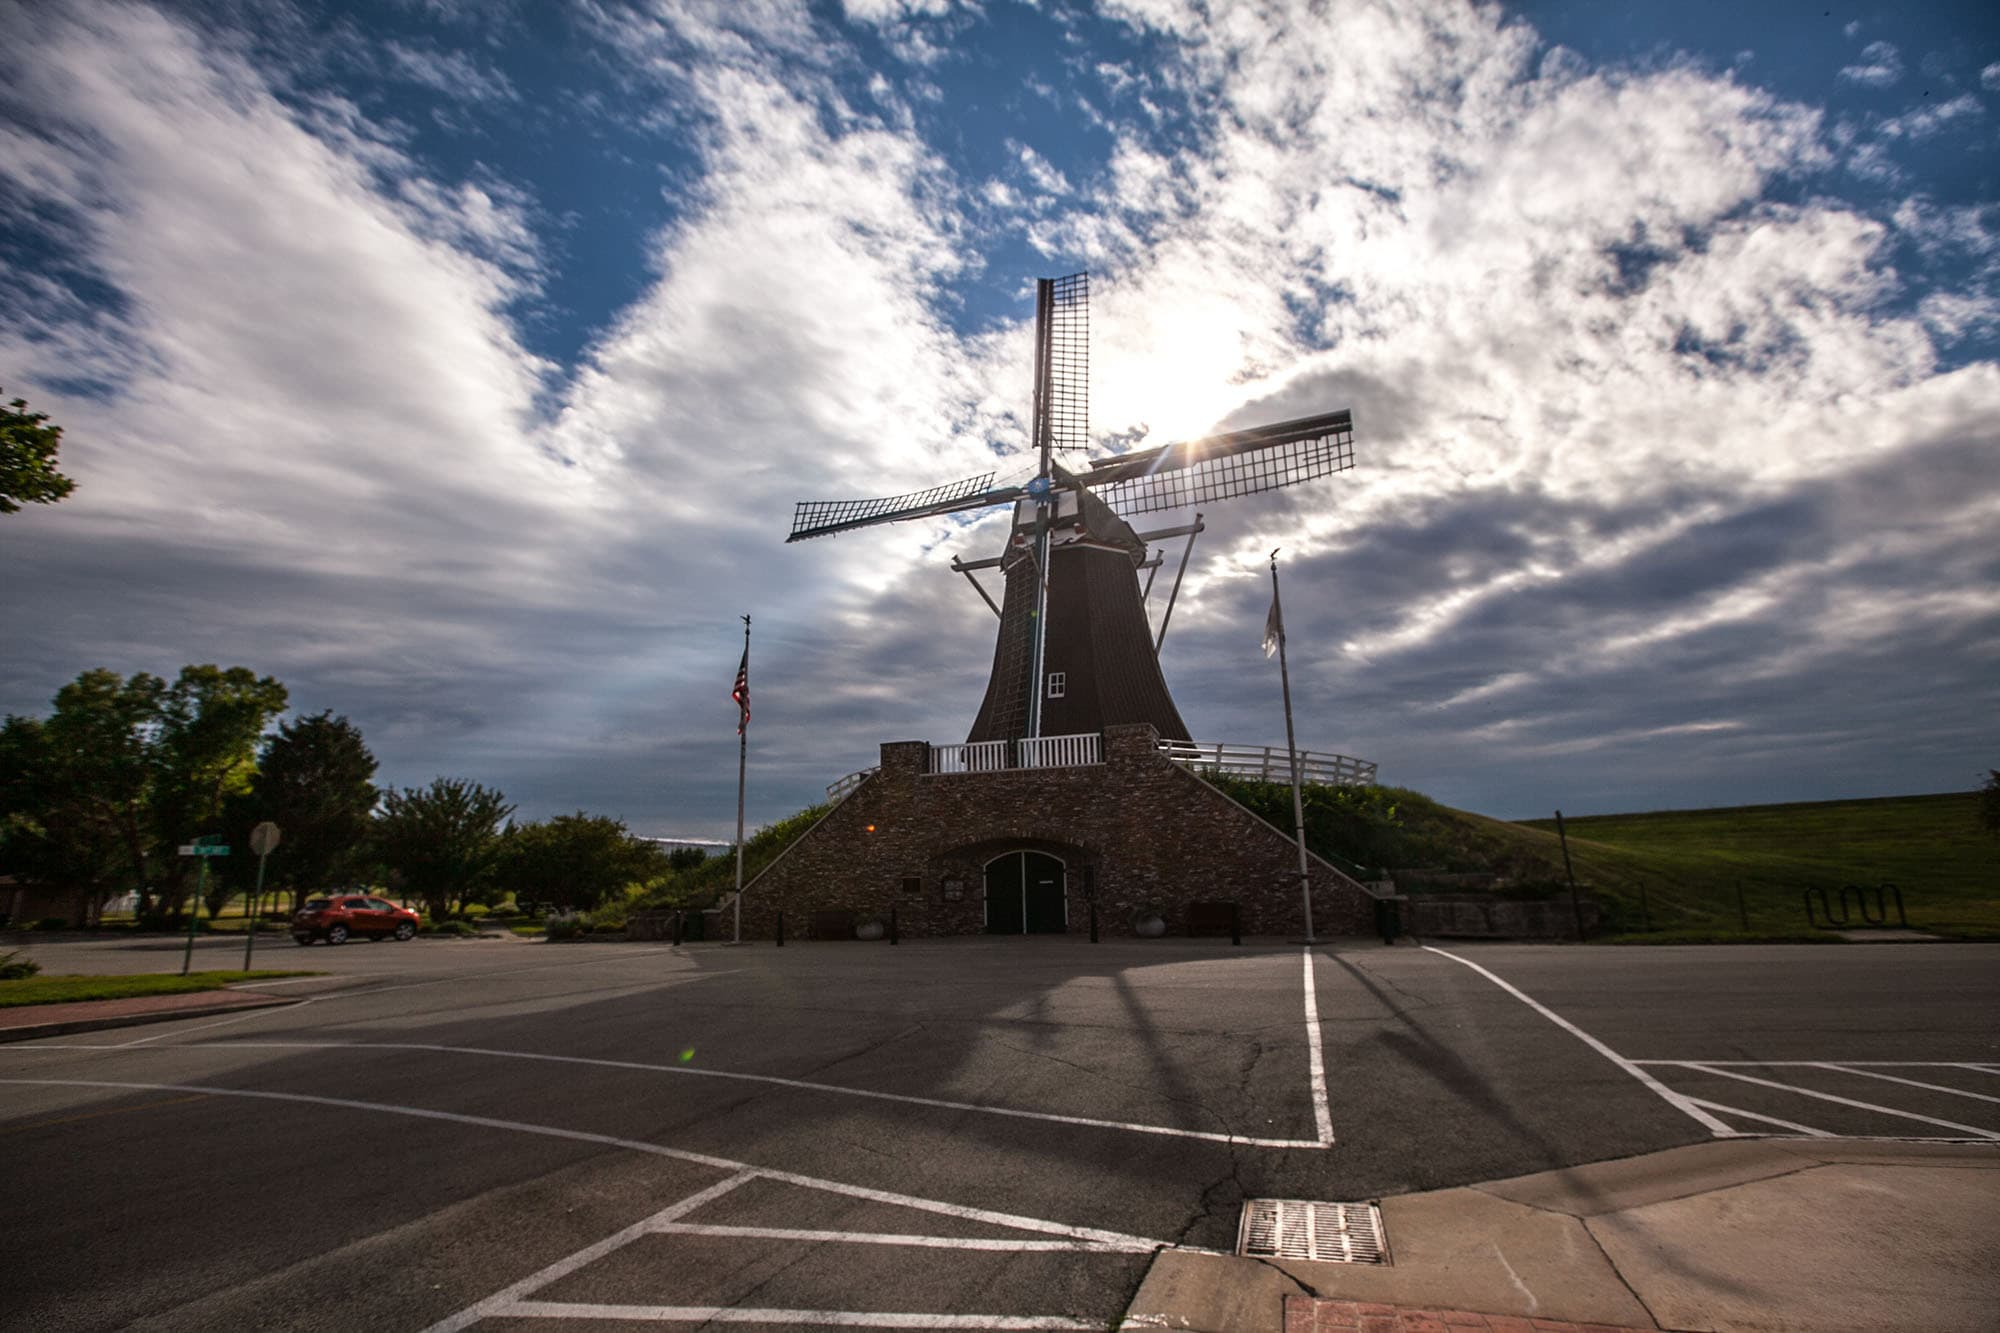 De Immigrant Windmill in Fulton, Illinois.